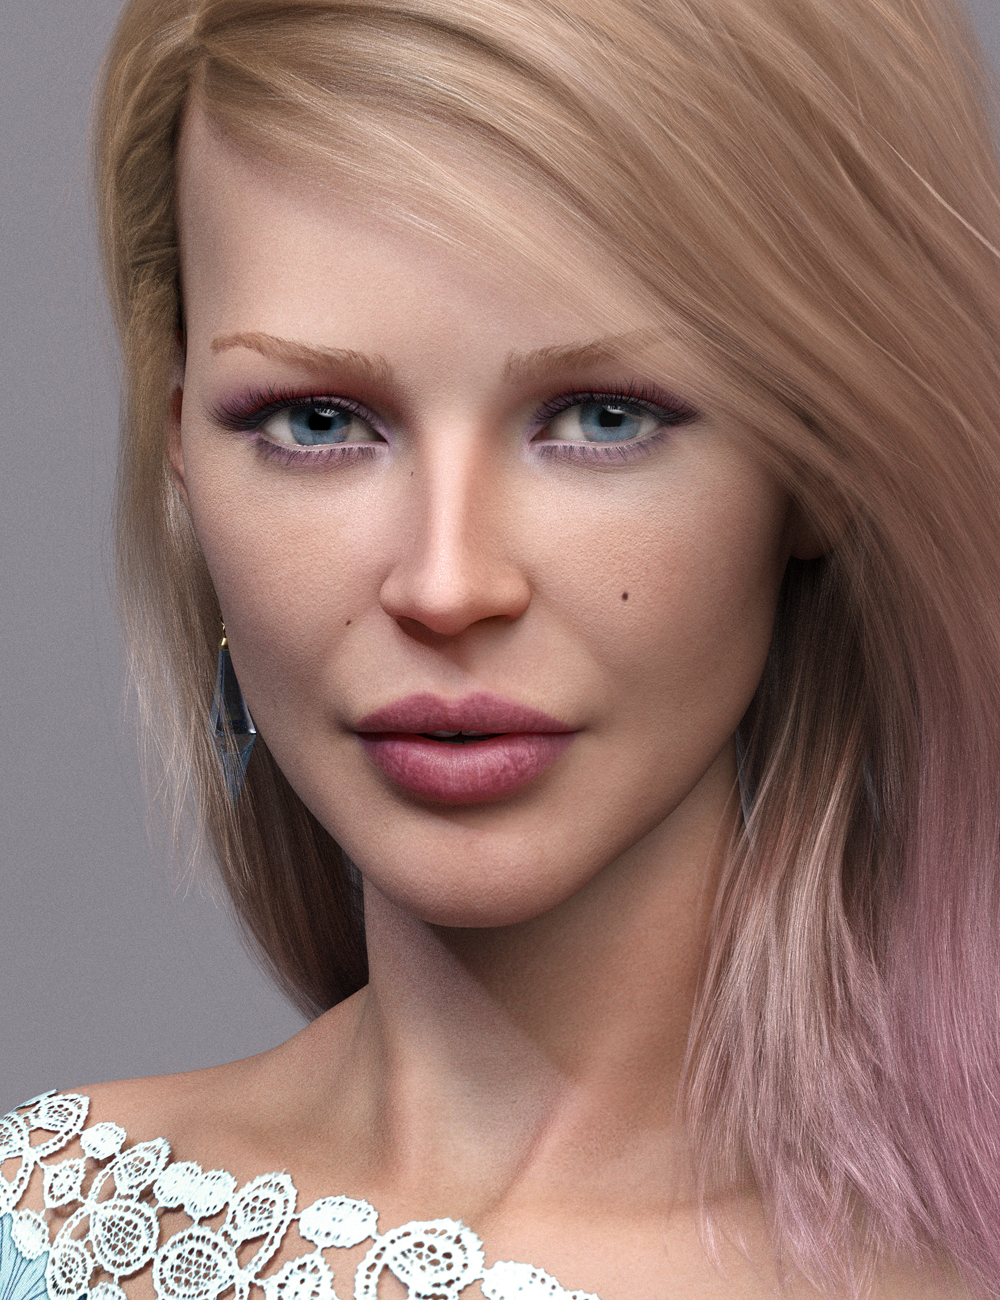 Alessandra HD for Leisa 8 by: Emrys, 3D Models by Daz 3D